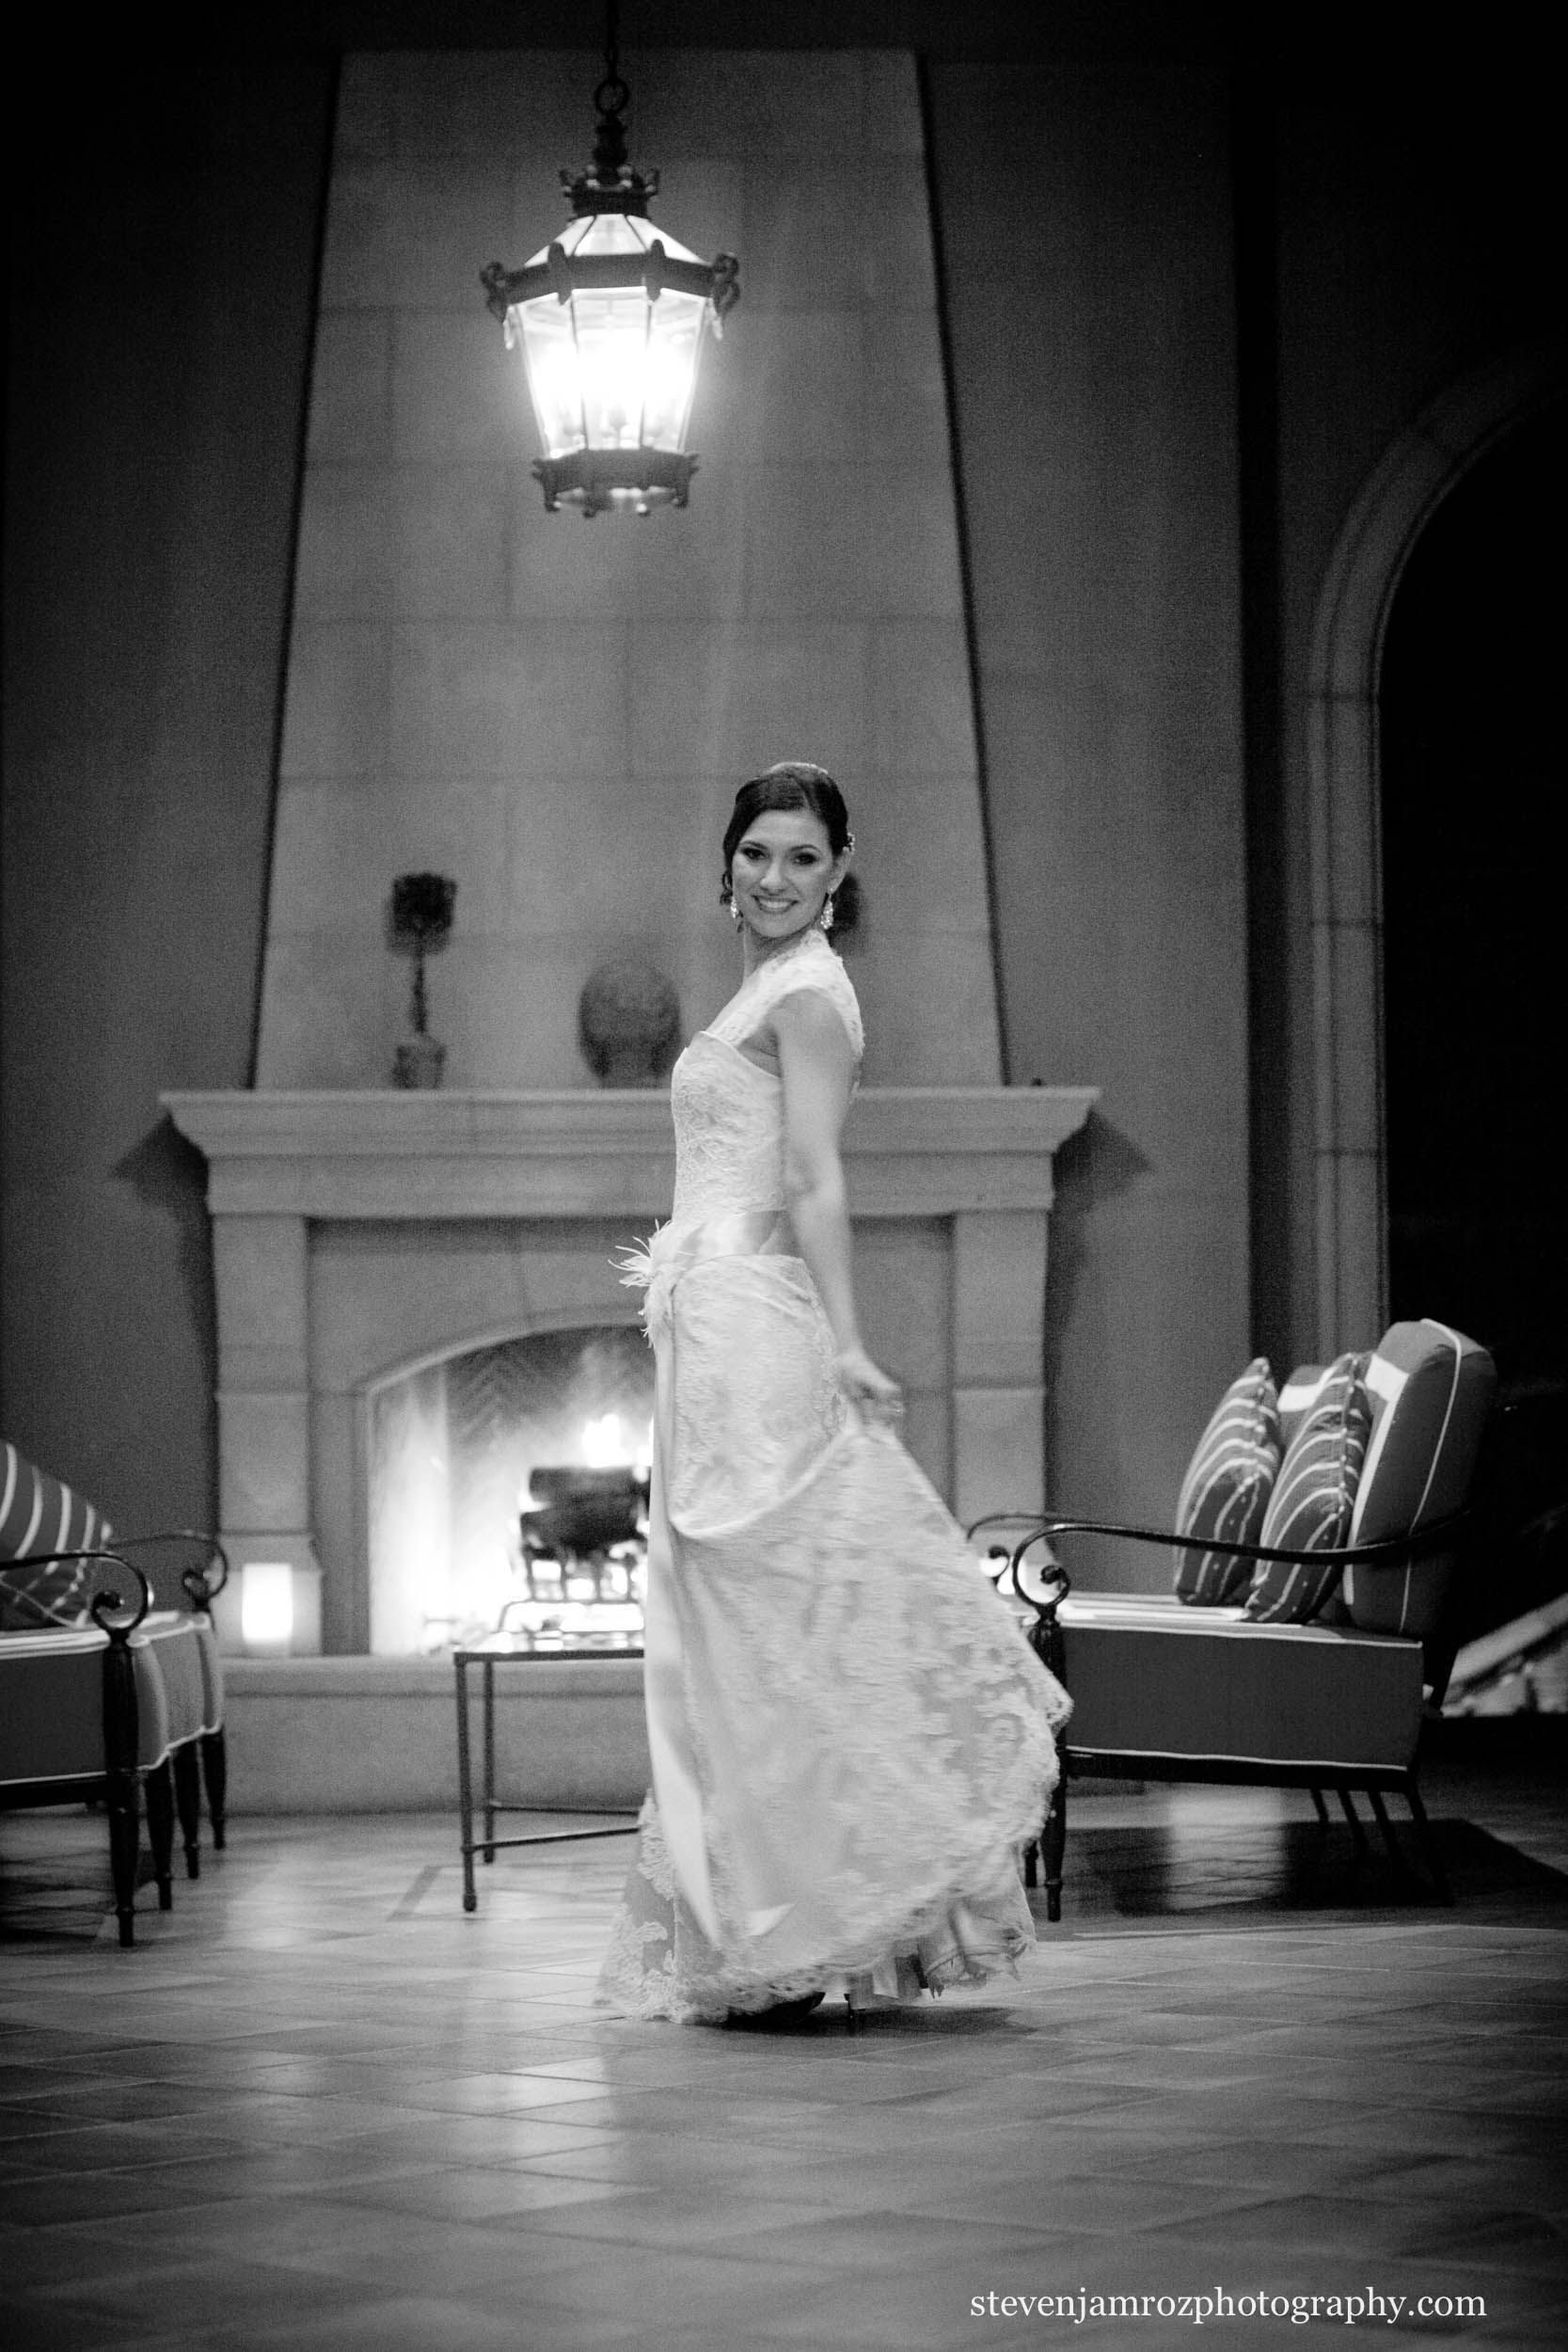 twirl-wedding-dress-raleigh-photographers-steven-jamroz-photography-0283.jpg